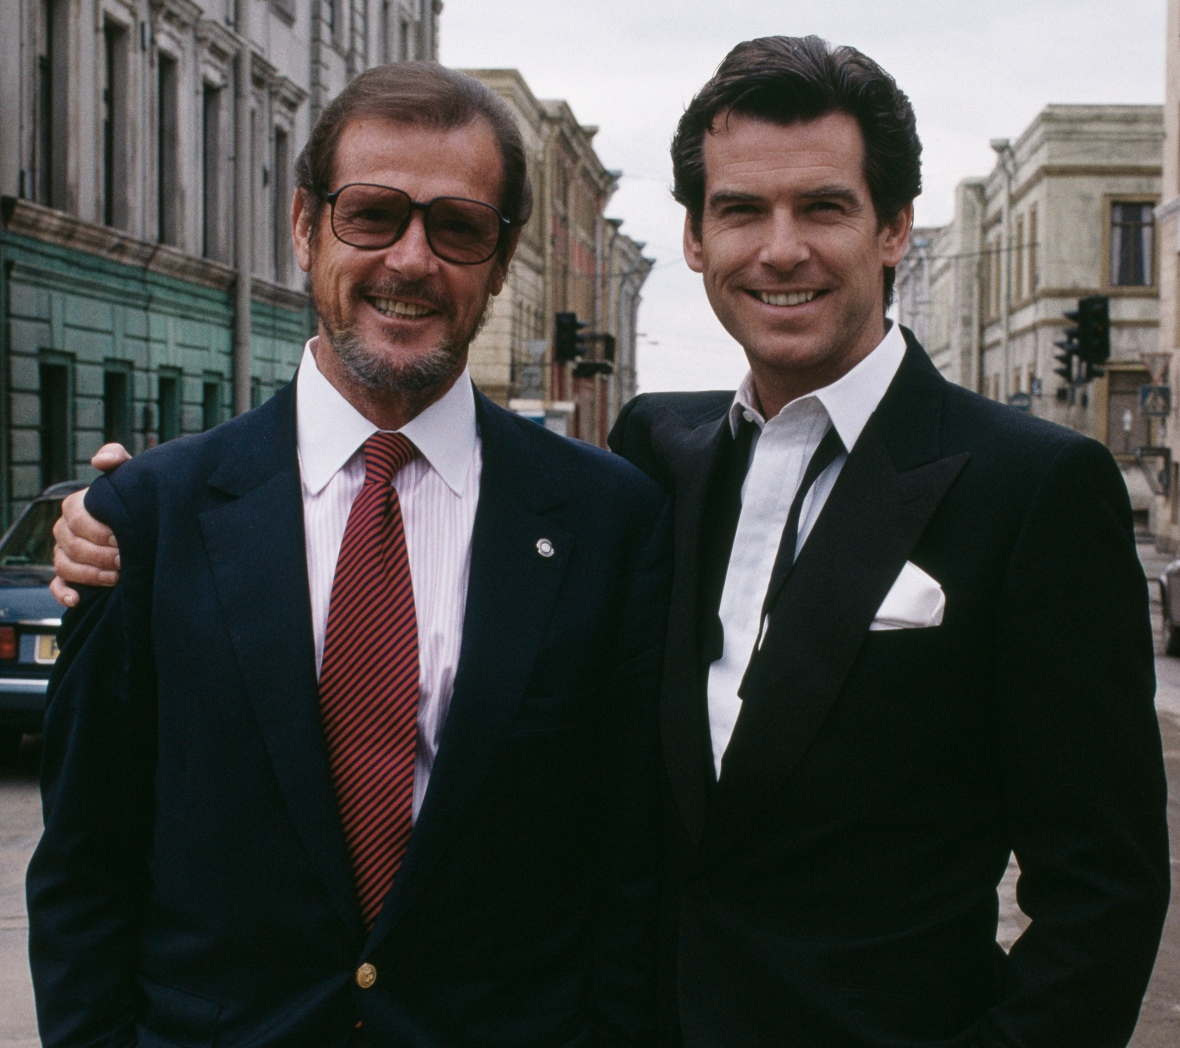 goldeneye - pierce brosnan and roger moore